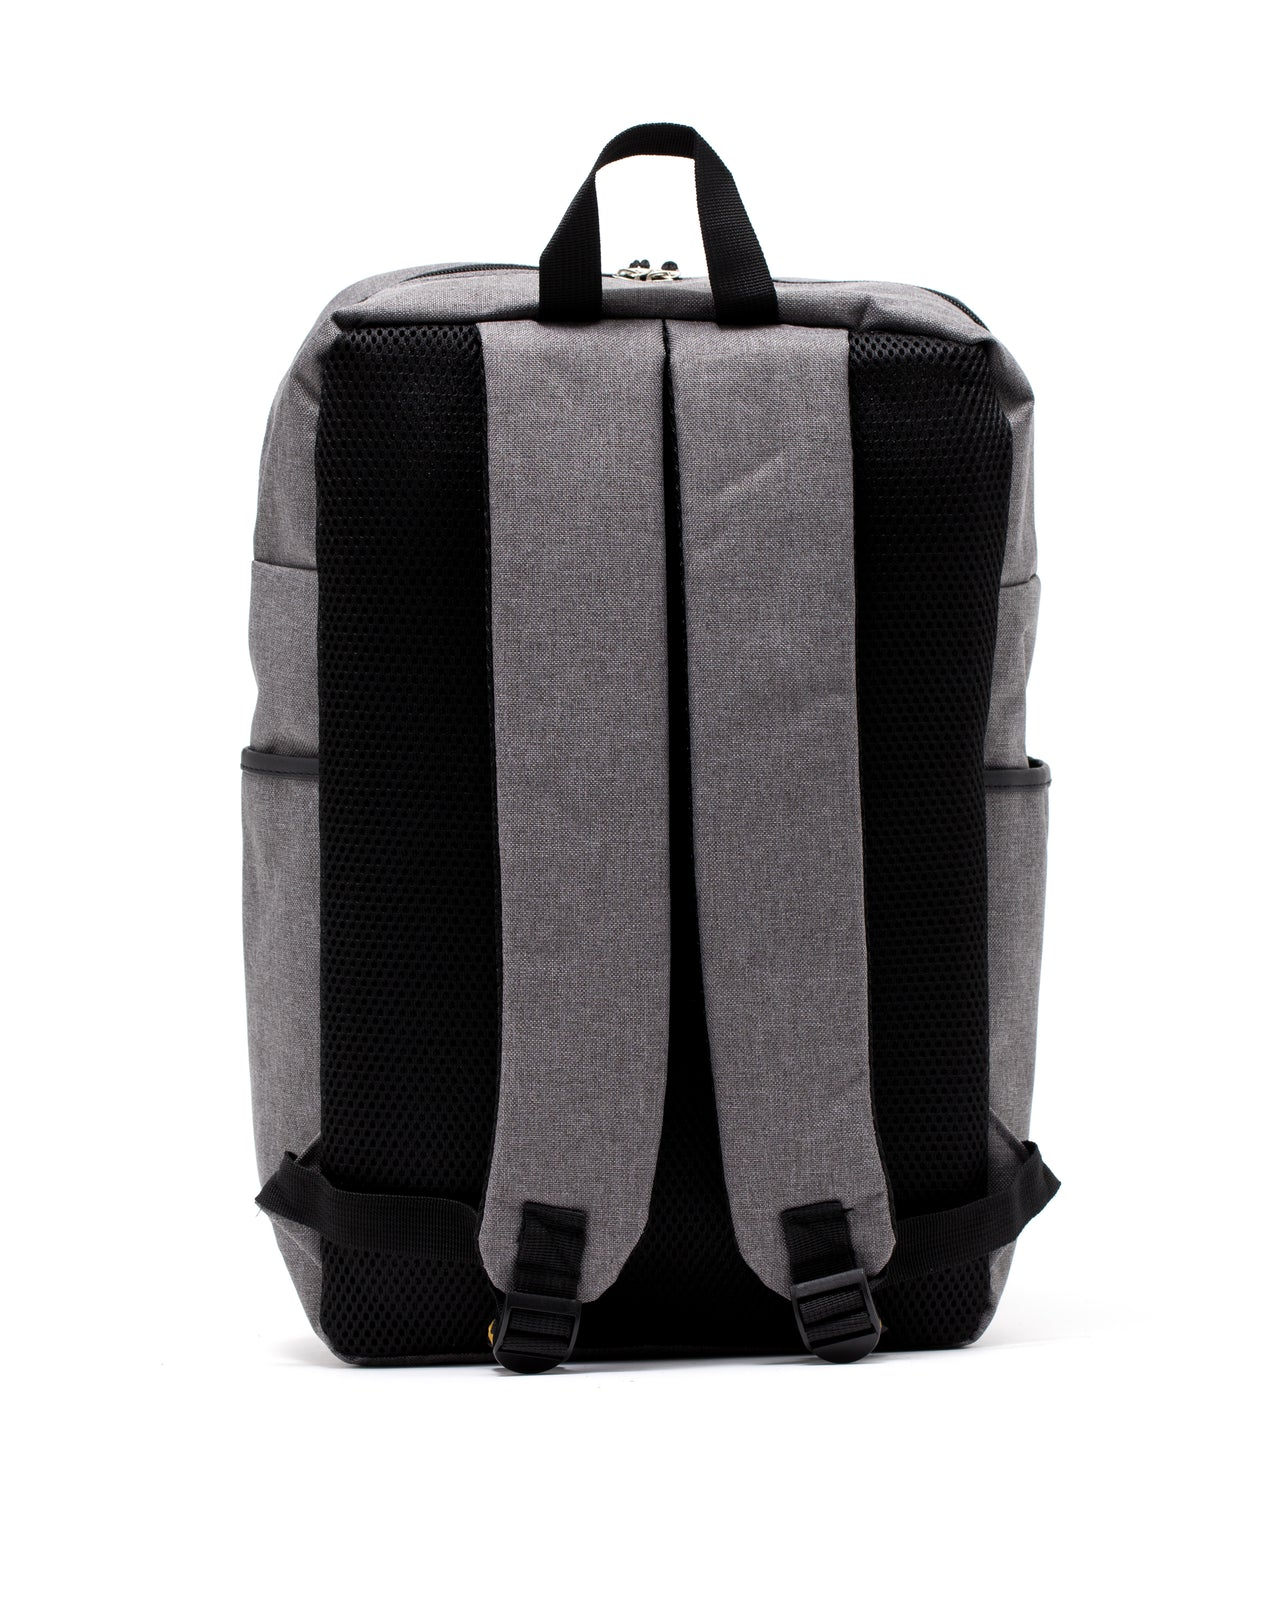 PS 191 Backpack - Color: Grey | Gray